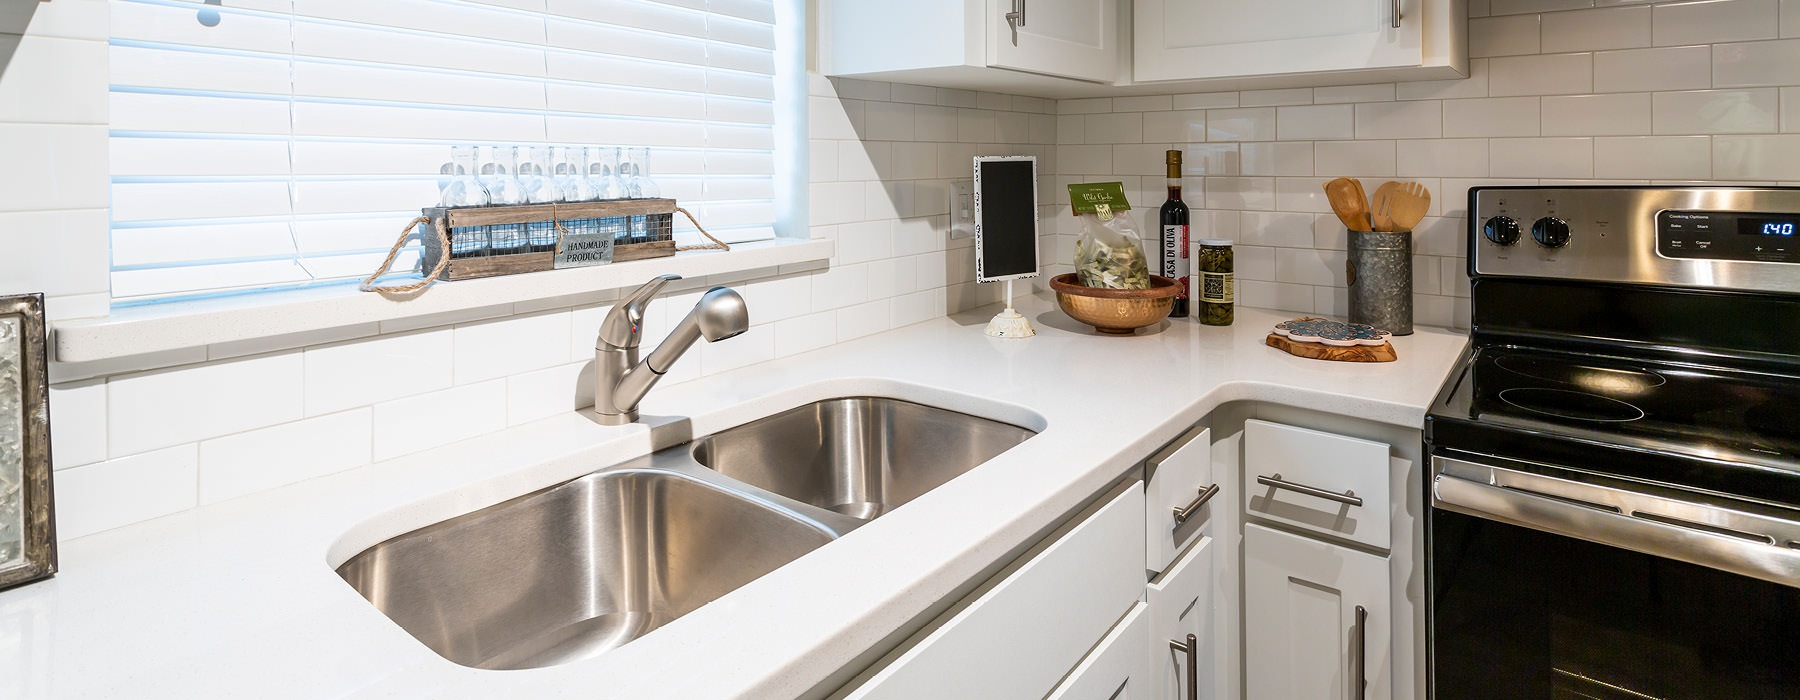 white counter and cabinets in well lit kitchen with window